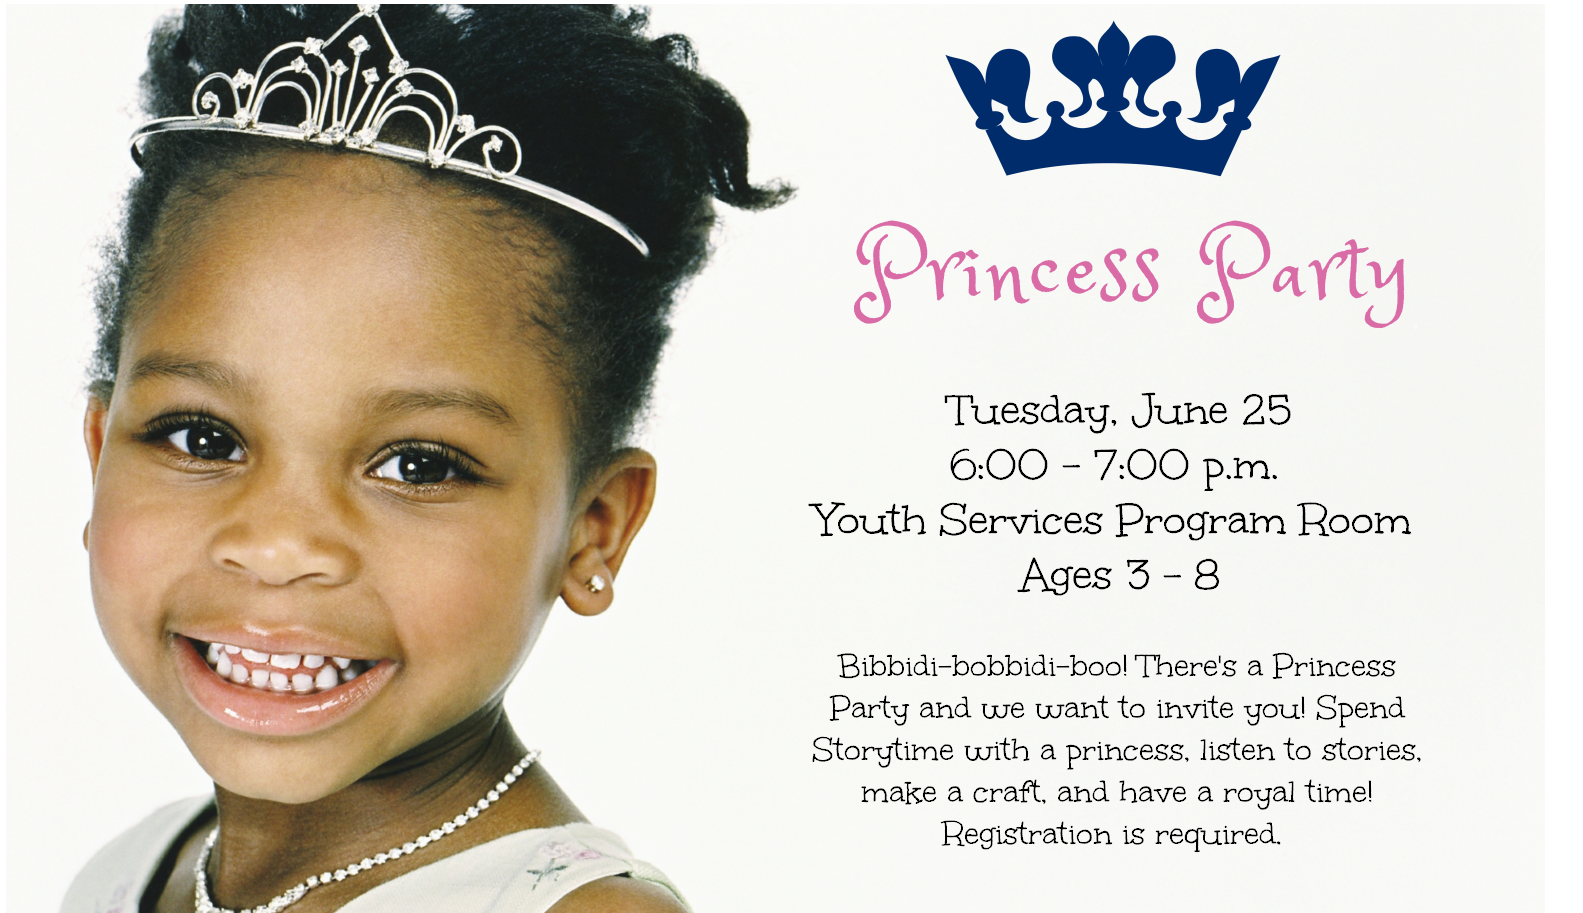 Flyer for the Princess Party